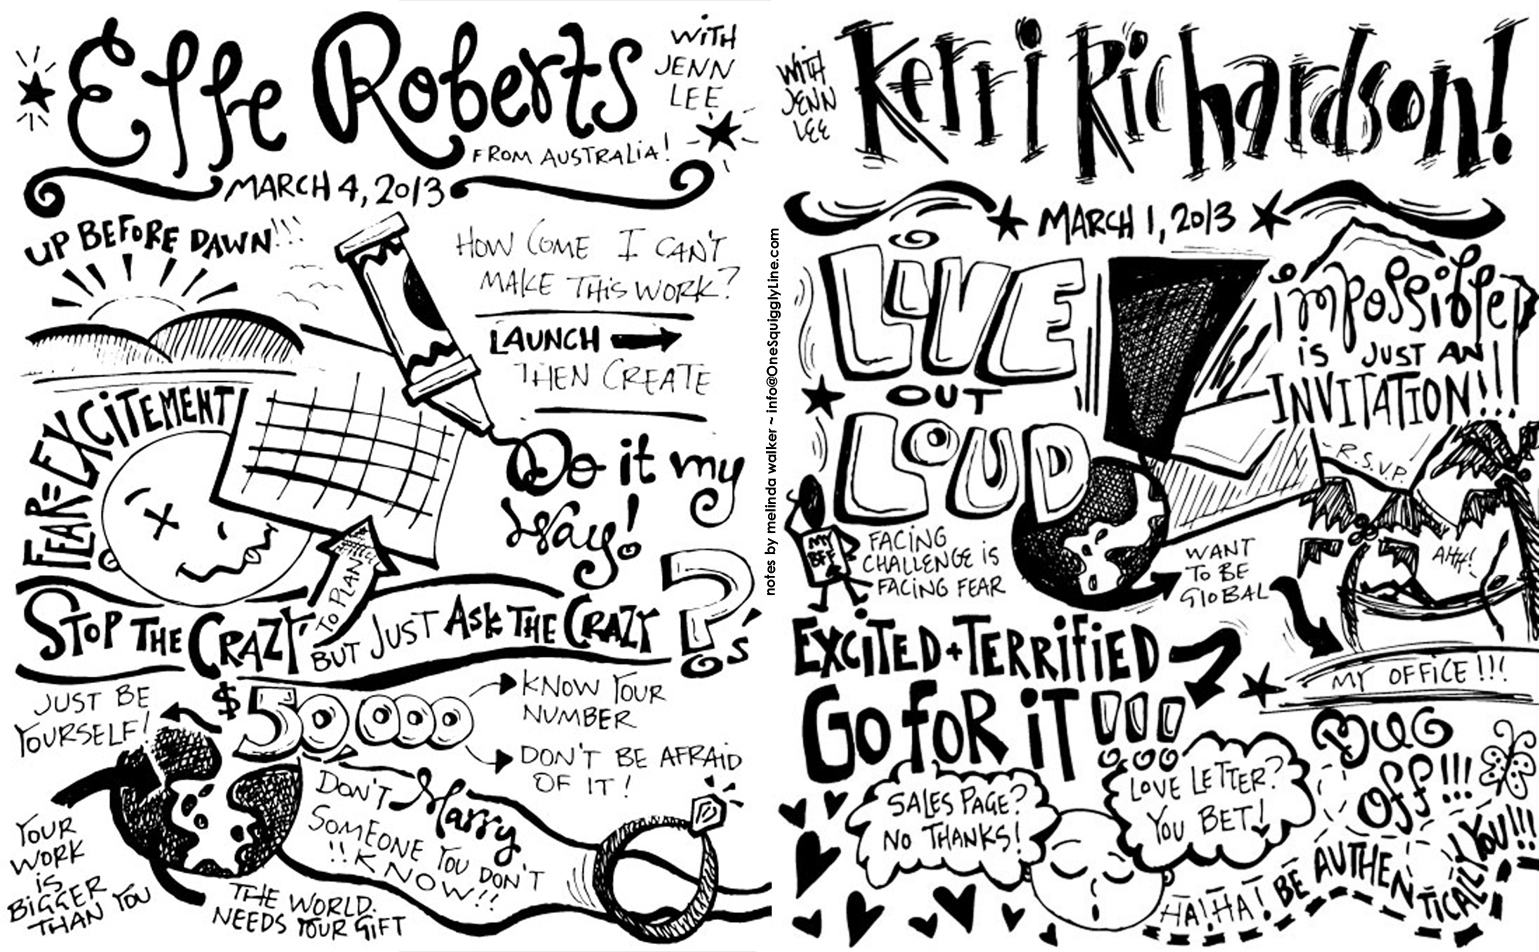 Sketchnotes: Interviews with Elle Roberts & Kerri Richardson